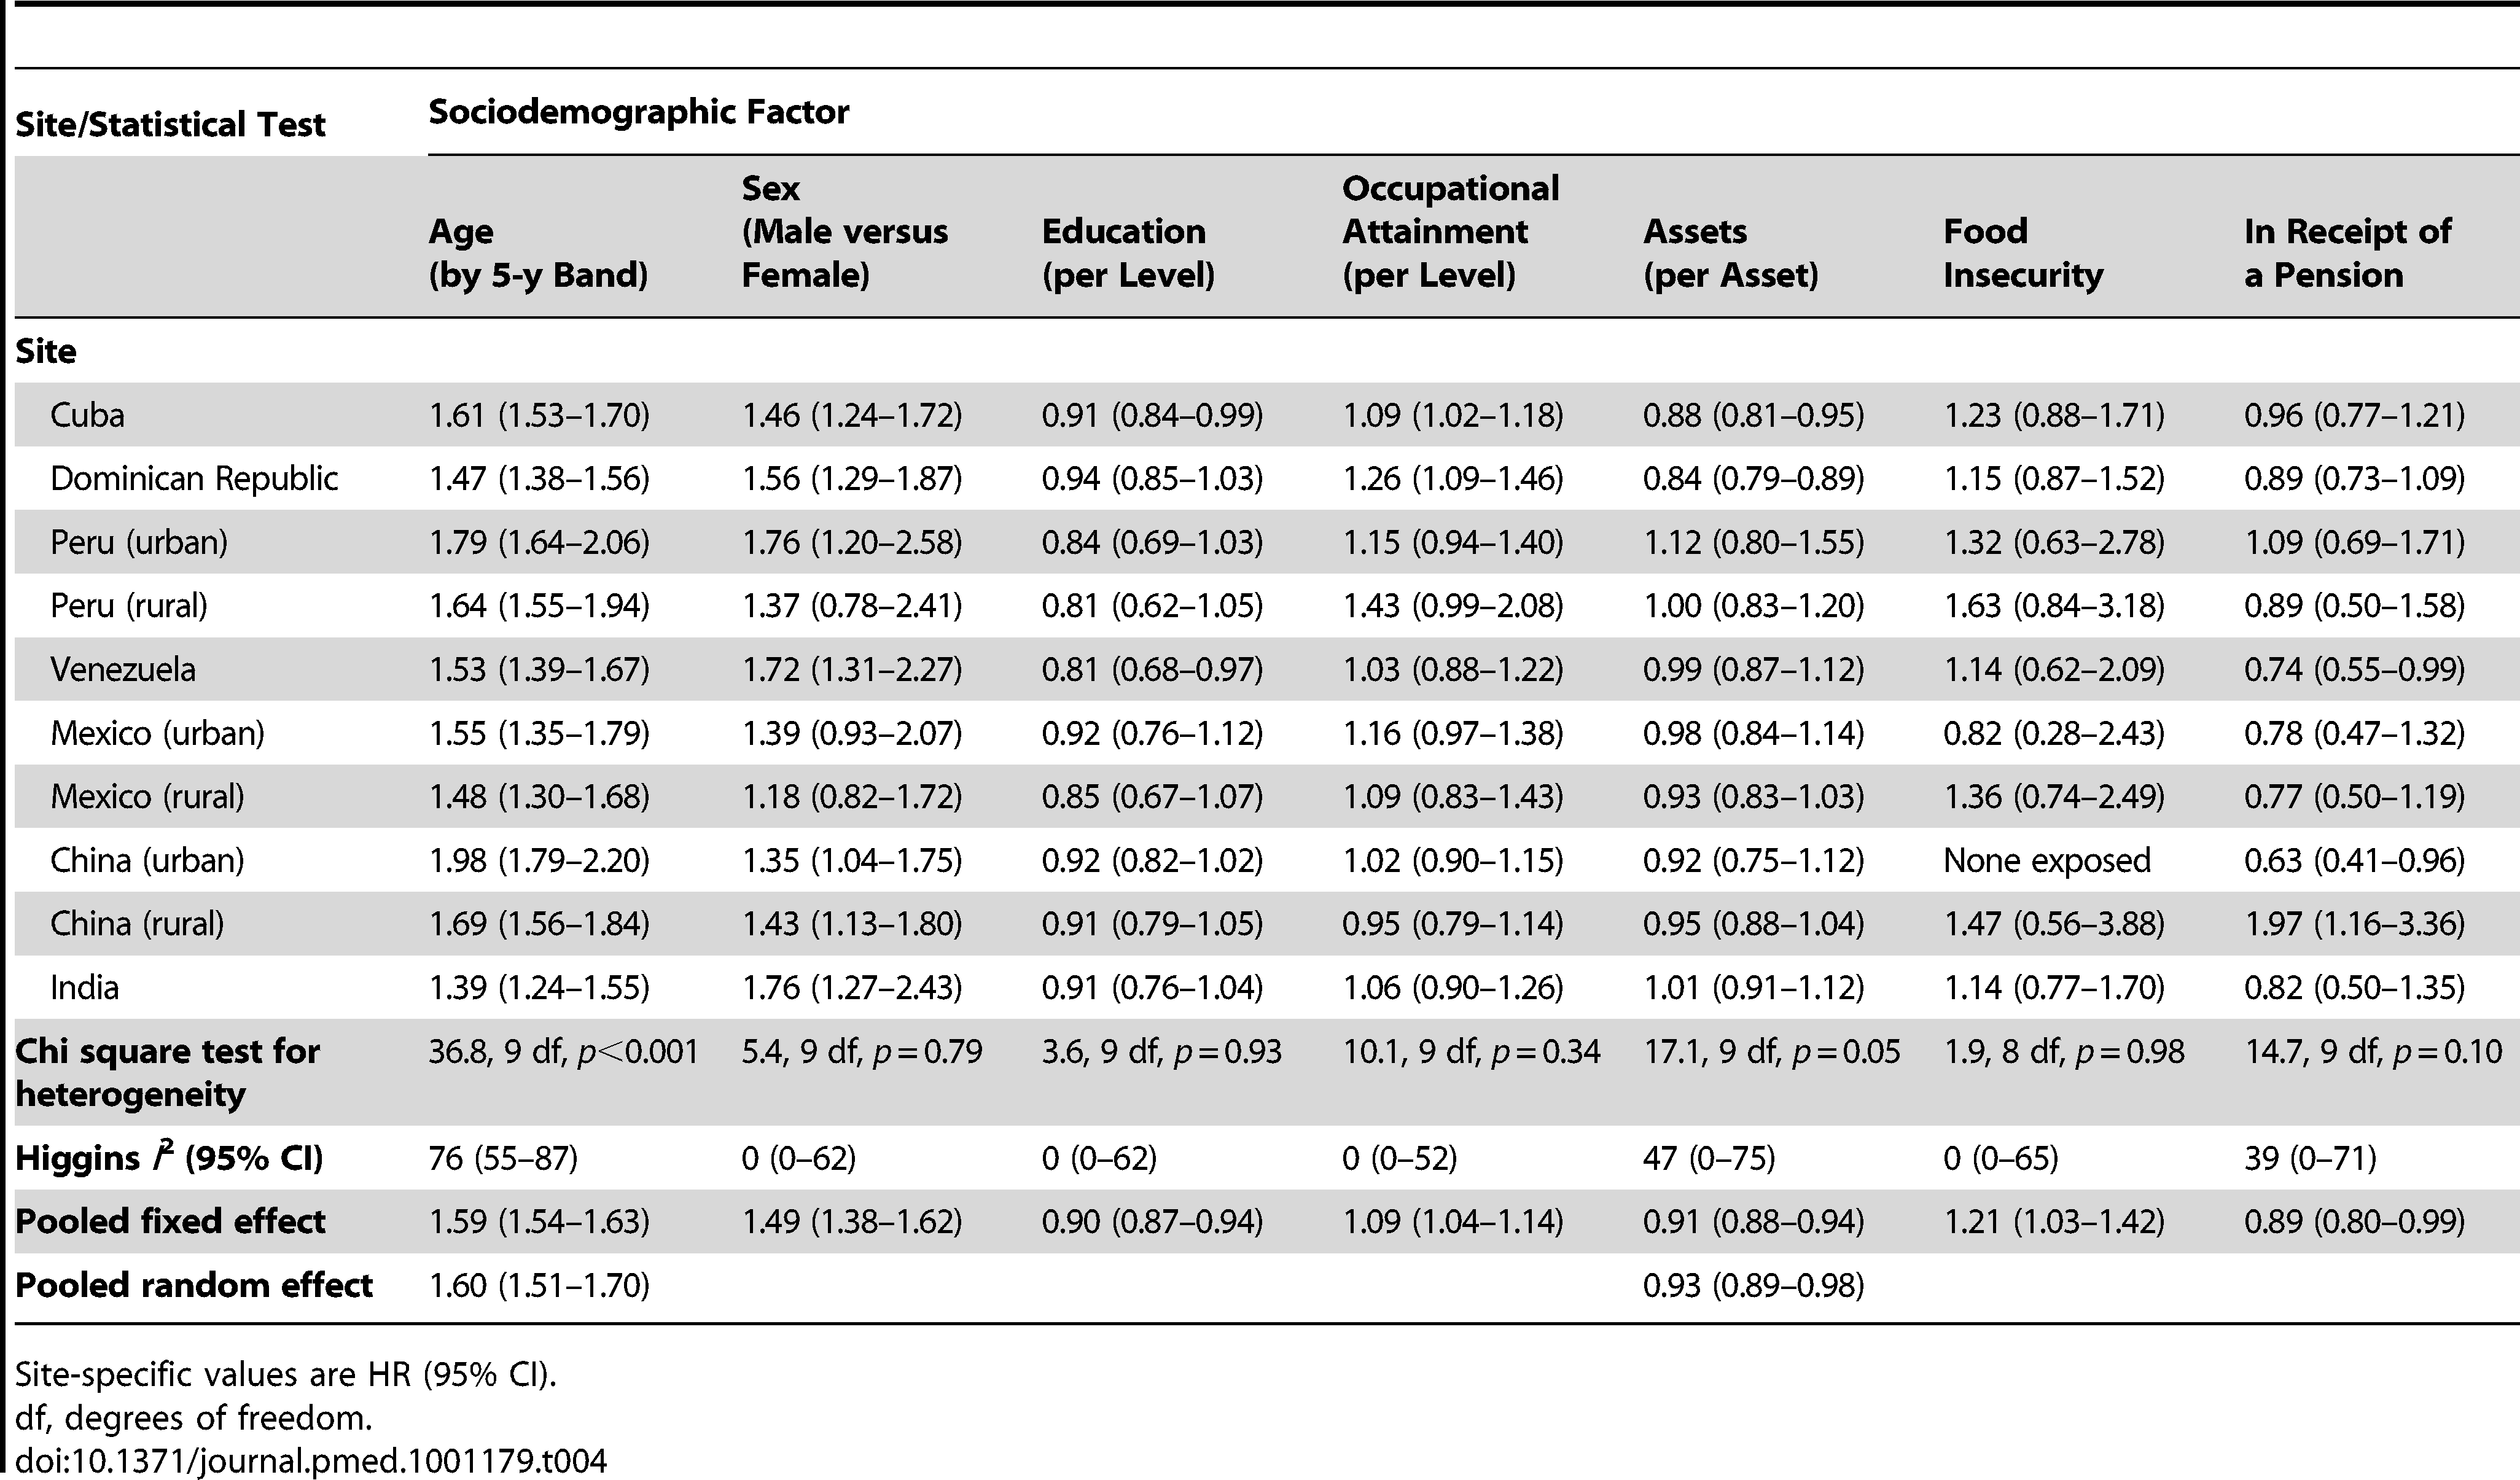 Age- and sex-adjusted hazard ratios for the associations between sociodemographic factors and mortality, by site.